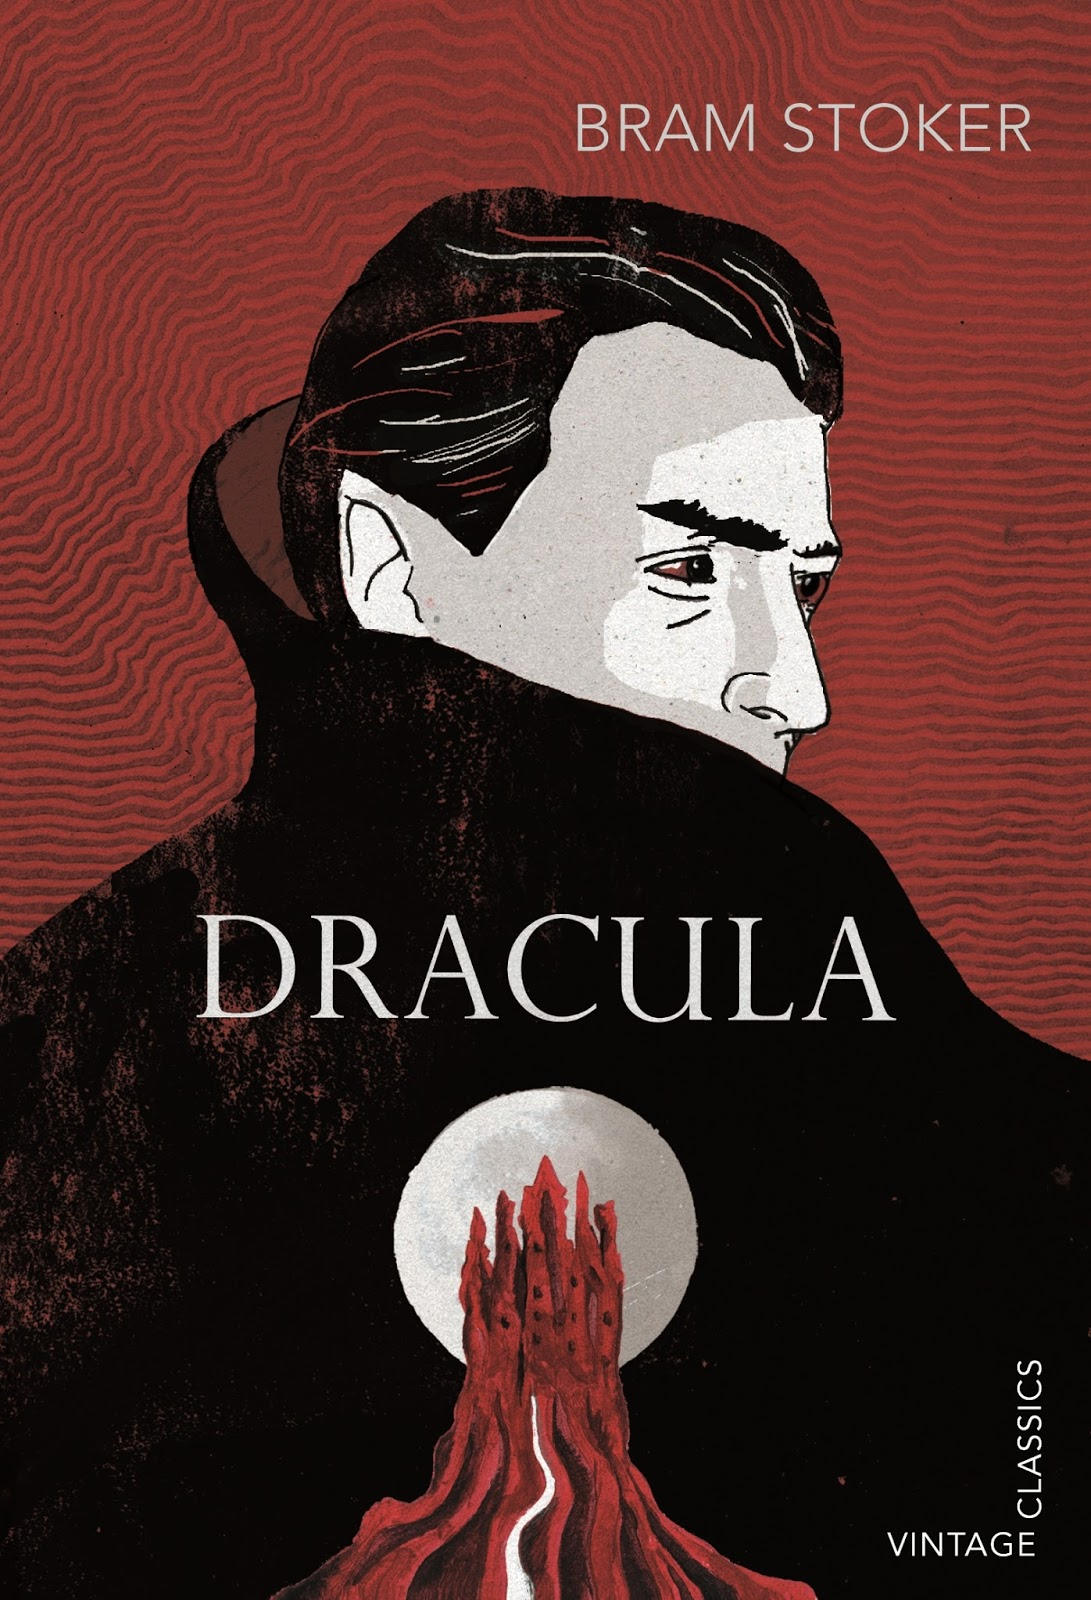 Classic Book Cover Up : Dragon dracula by bram stoker review